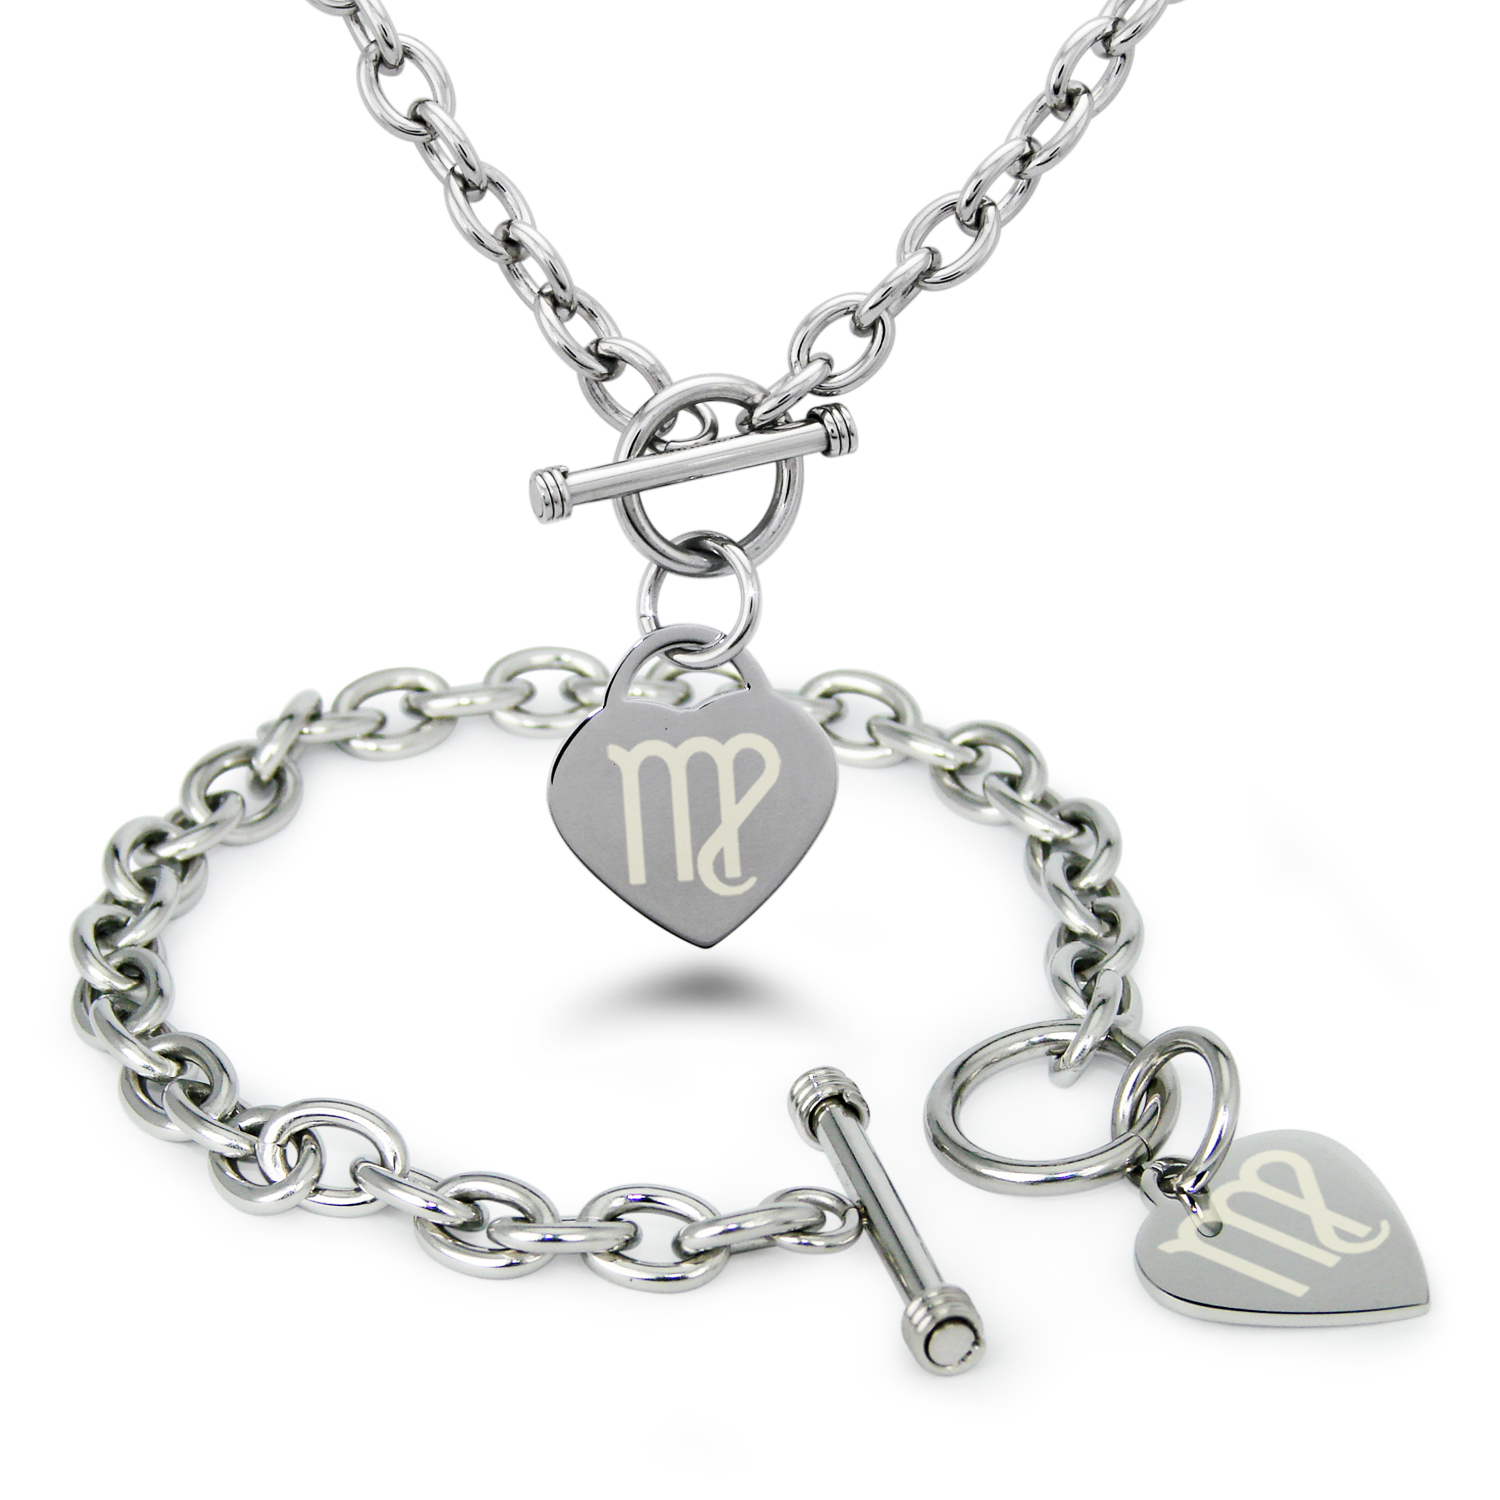 Stainless Steel Virgo Astrology Symbol Heart Charm Toggle Bracelet & Necklace